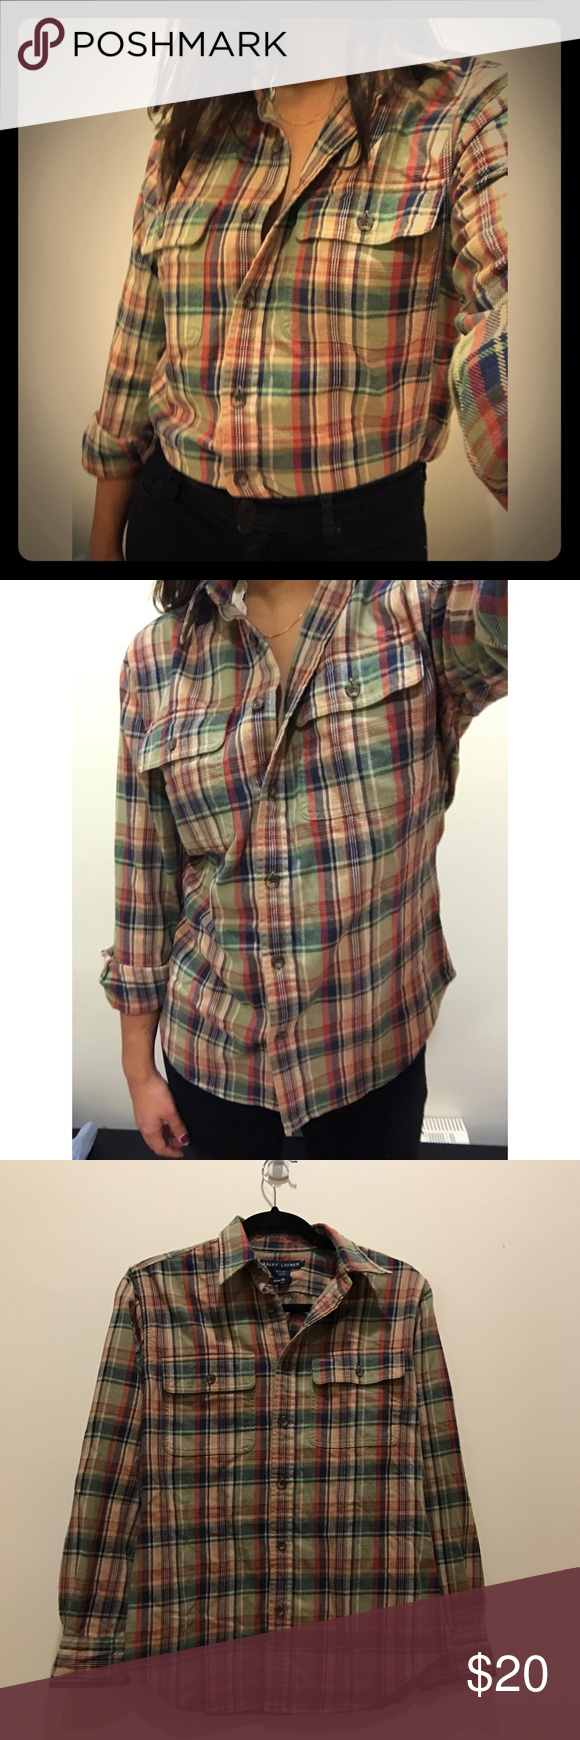 Ralph Lauren Plaid Shirt Super cute Ralph Lauren shirt. I love how comfortable it is and how vintage-y and cool it looks! 100% cotton!! It is slightly thick but super soft. The patches on sleeves are a suede-like material. The size says 8, I'm a medium and it fits me just right, if you're a small it might be a little looser. Ralph Lauren Tops Button Down Shirts